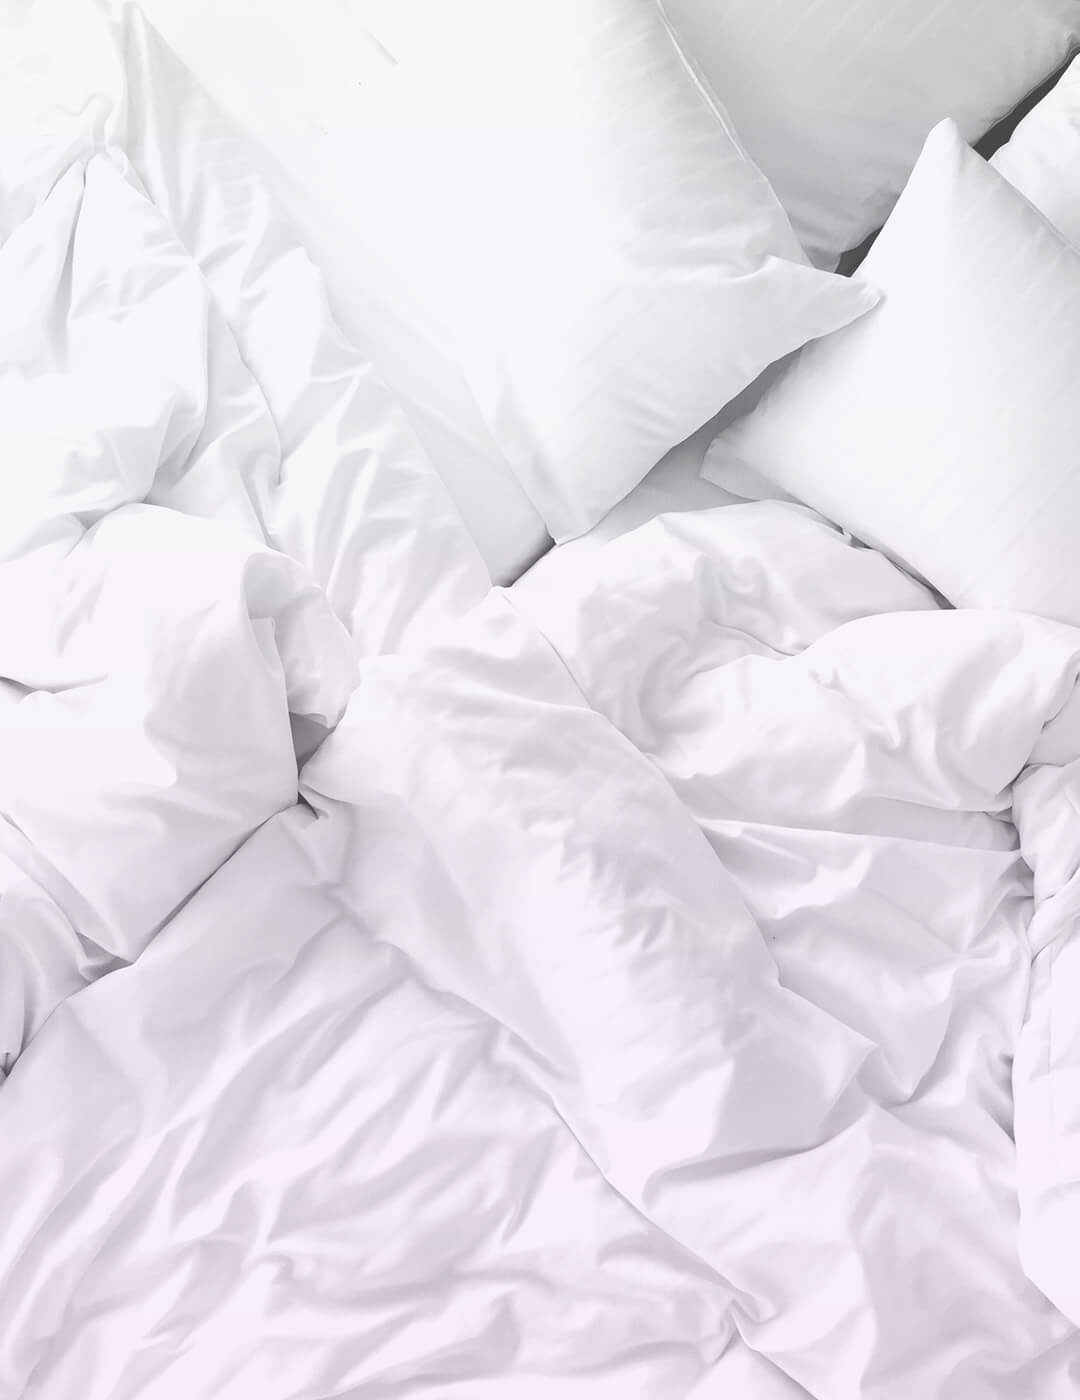 weighted blanket (white) as an idea on how to sleep with anxiety